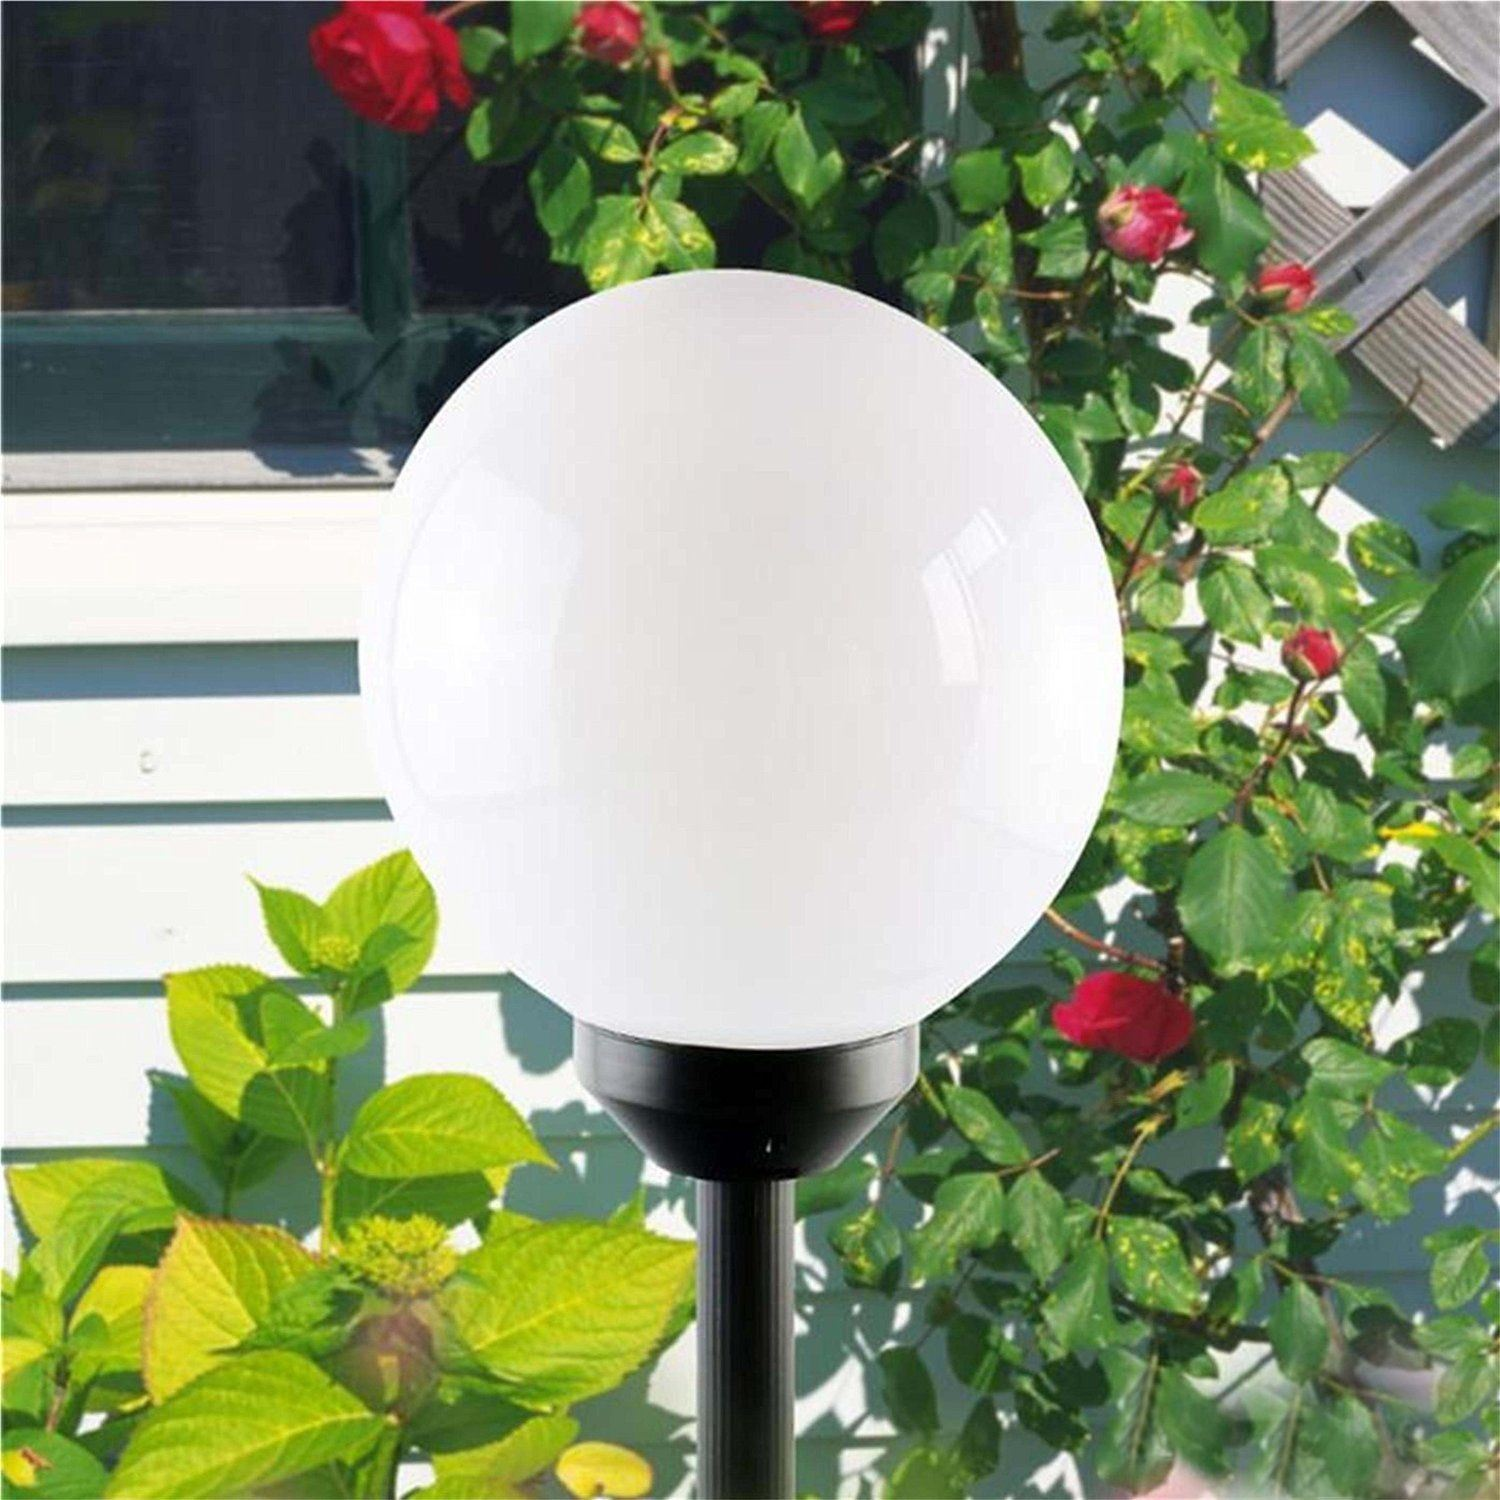 pack of 2 solar powered globe ball light round white led garden lighting lantern ebay. Black Bedroom Furniture Sets. Home Design Ideas